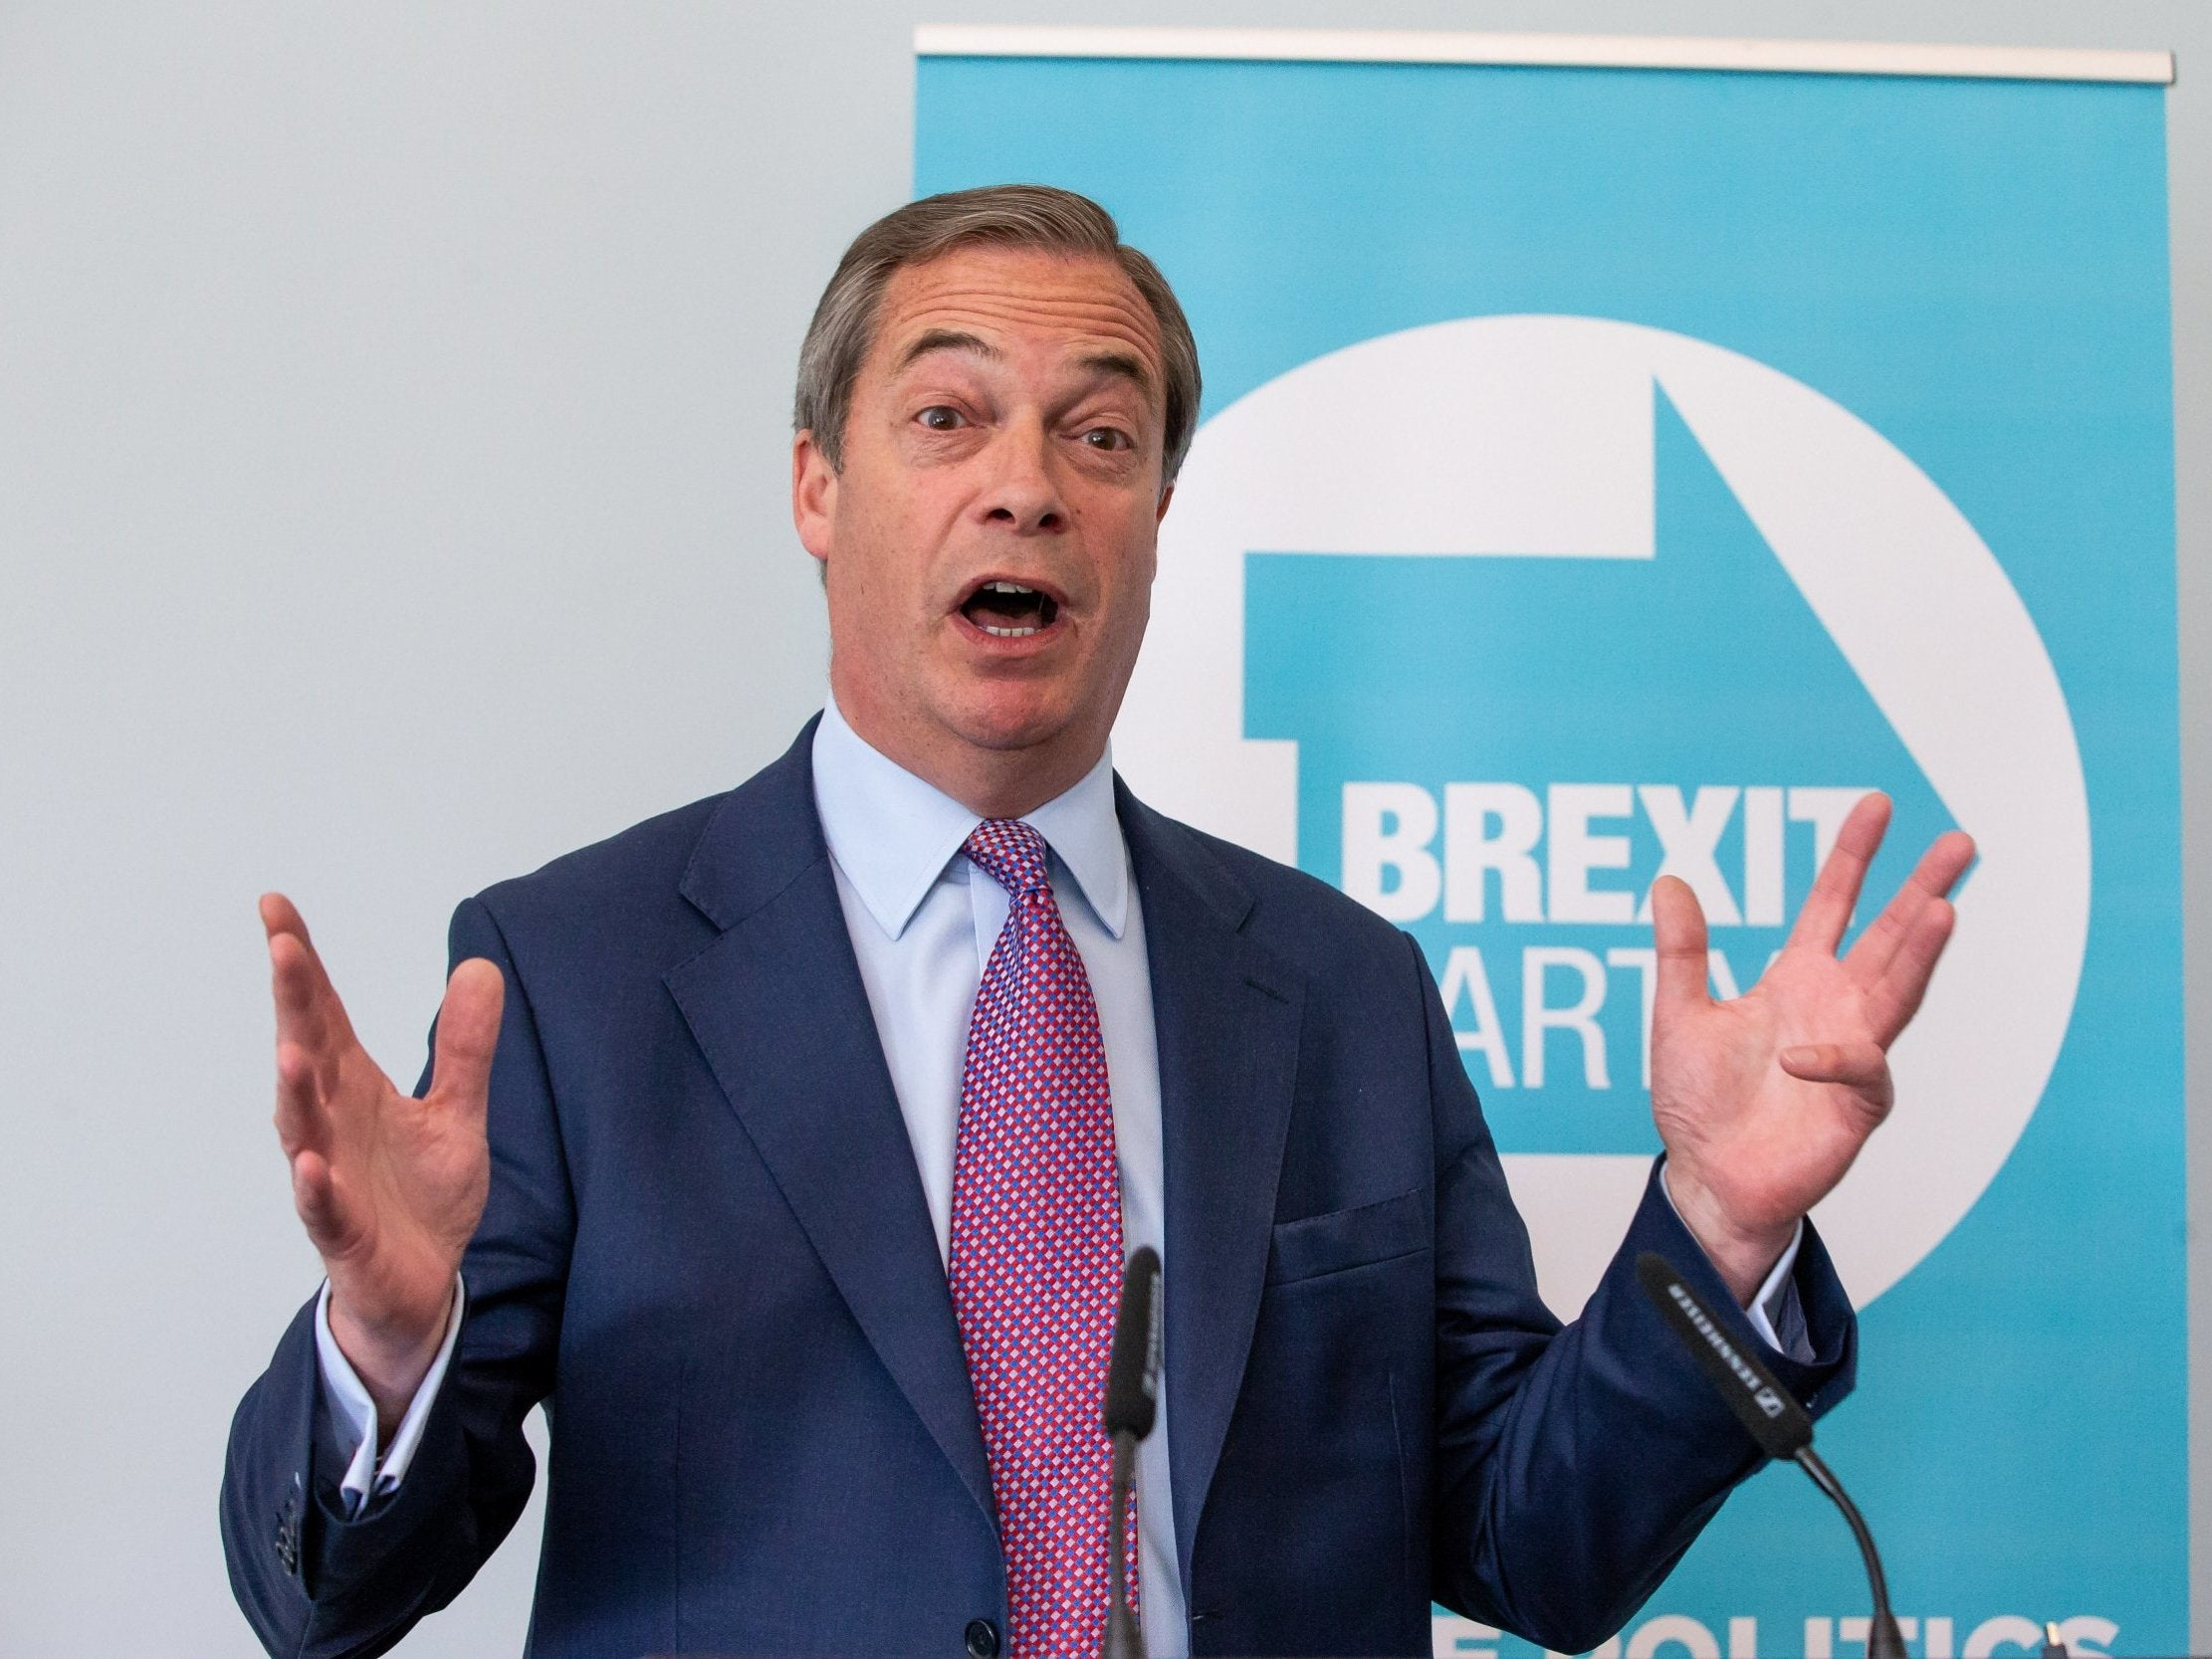 Nigel Farage facing investigation by EU authorities over lavish gifts from millionaire tycoon